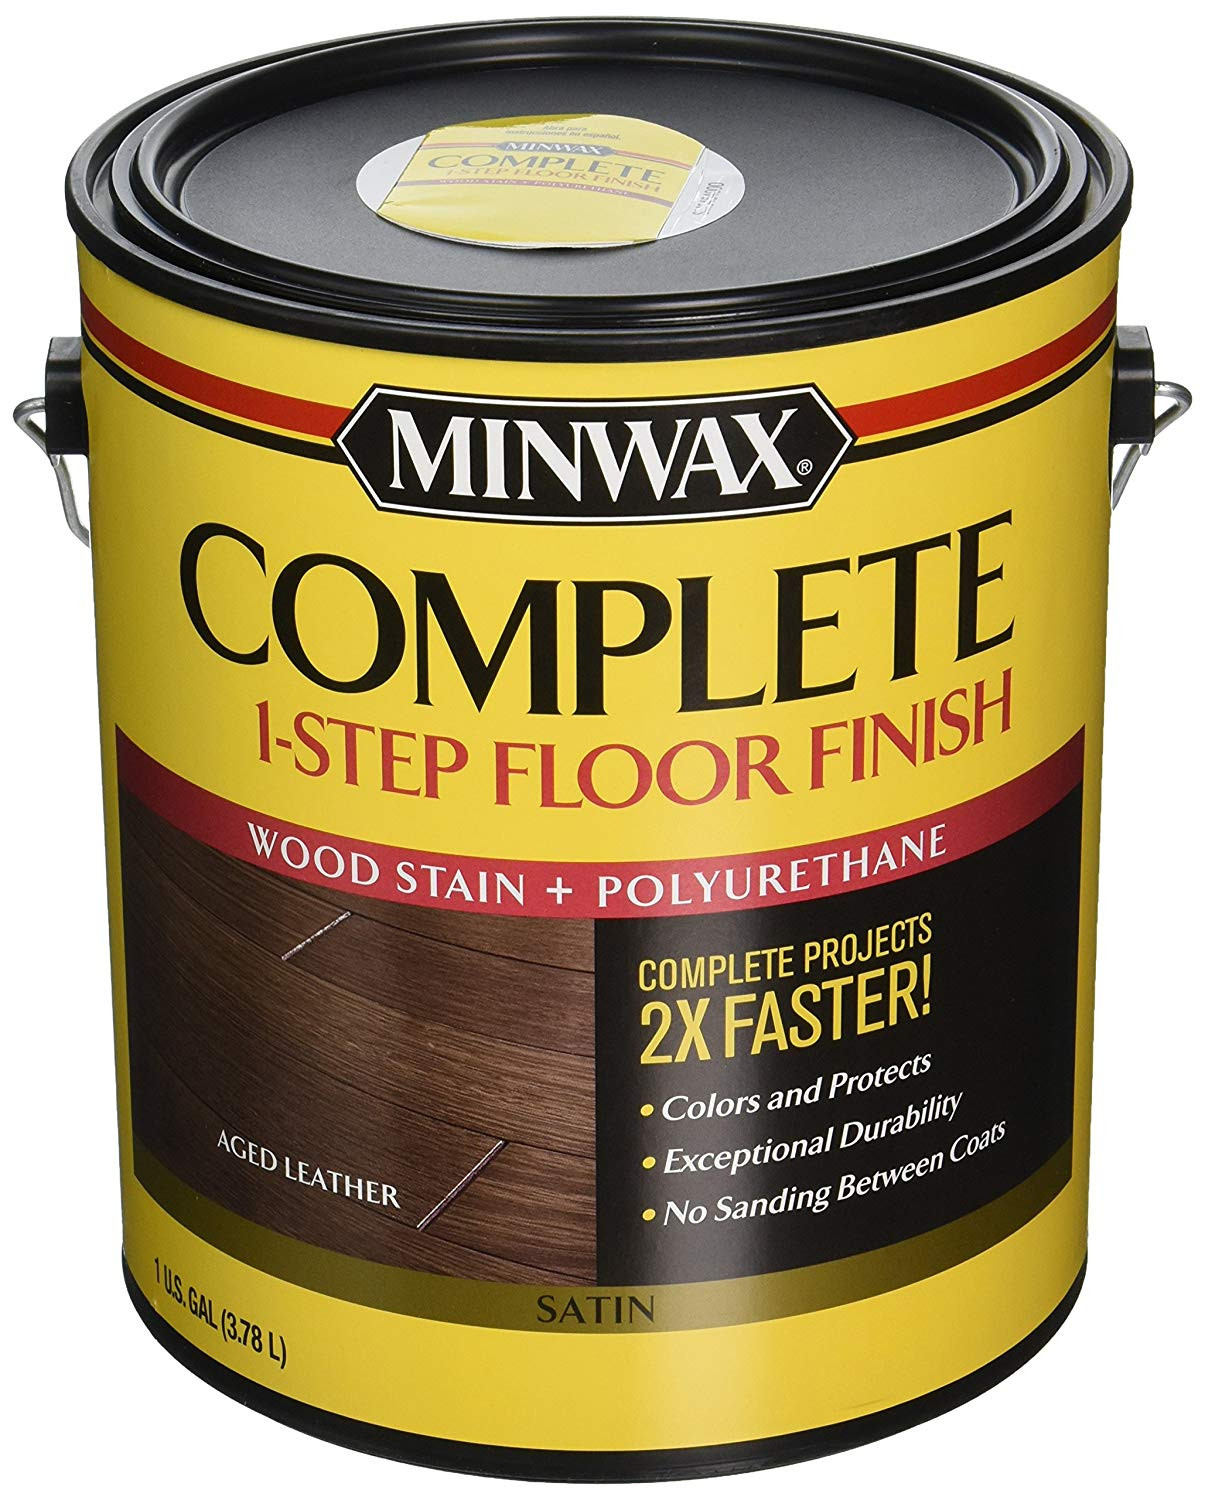 discontinued hardwood flooring for sale of minwax 672050000 67205 1g satin aged leather complete 1 step floor in minwax 672050000 67205 1g satin aged leather complete 1 step floor finish amazon com